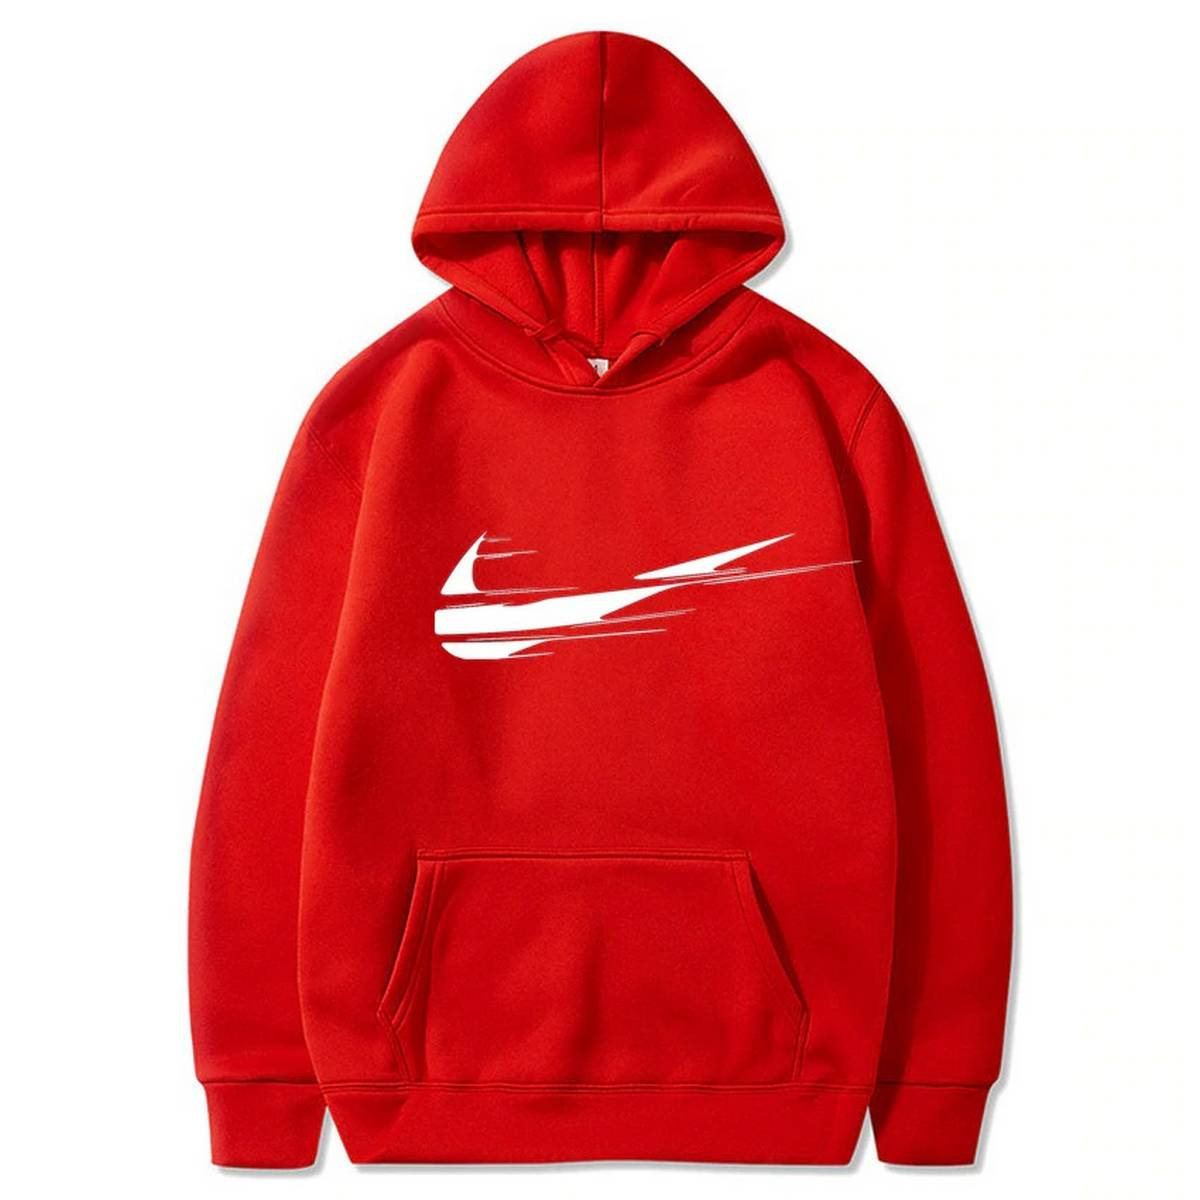 Fashion brand men's hooded tops 2020 spring and autumn men's streetwear